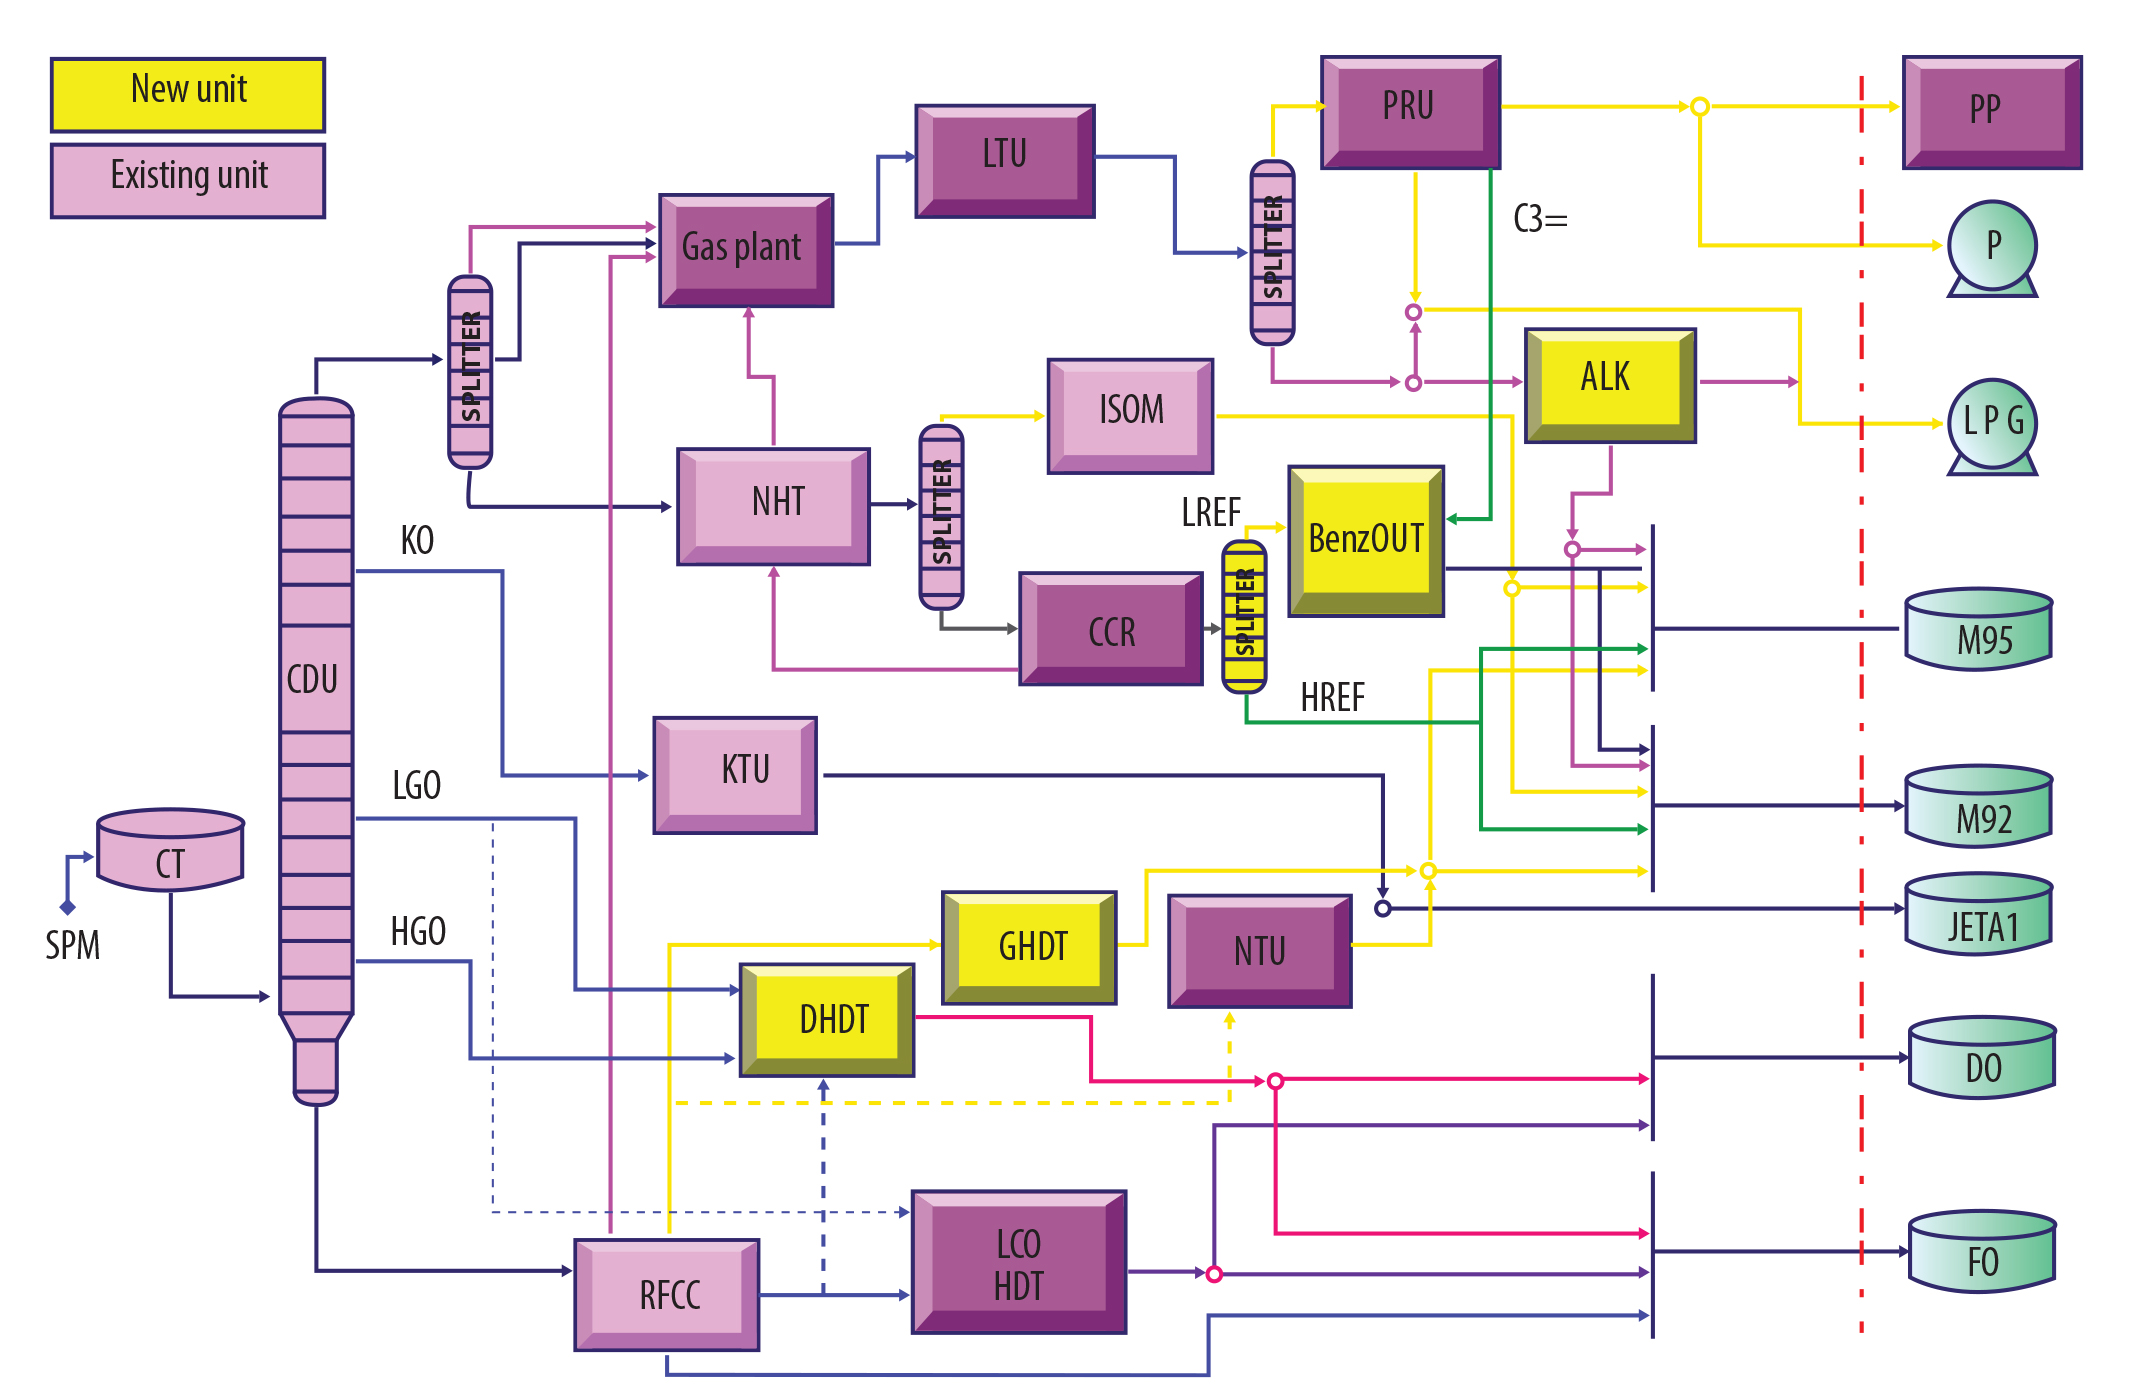 Dung Quat refinery general process flow after investing BenzOUT TM , GHDT, Alkylation for upgrading gasoline quality to meet Euro V specifications.